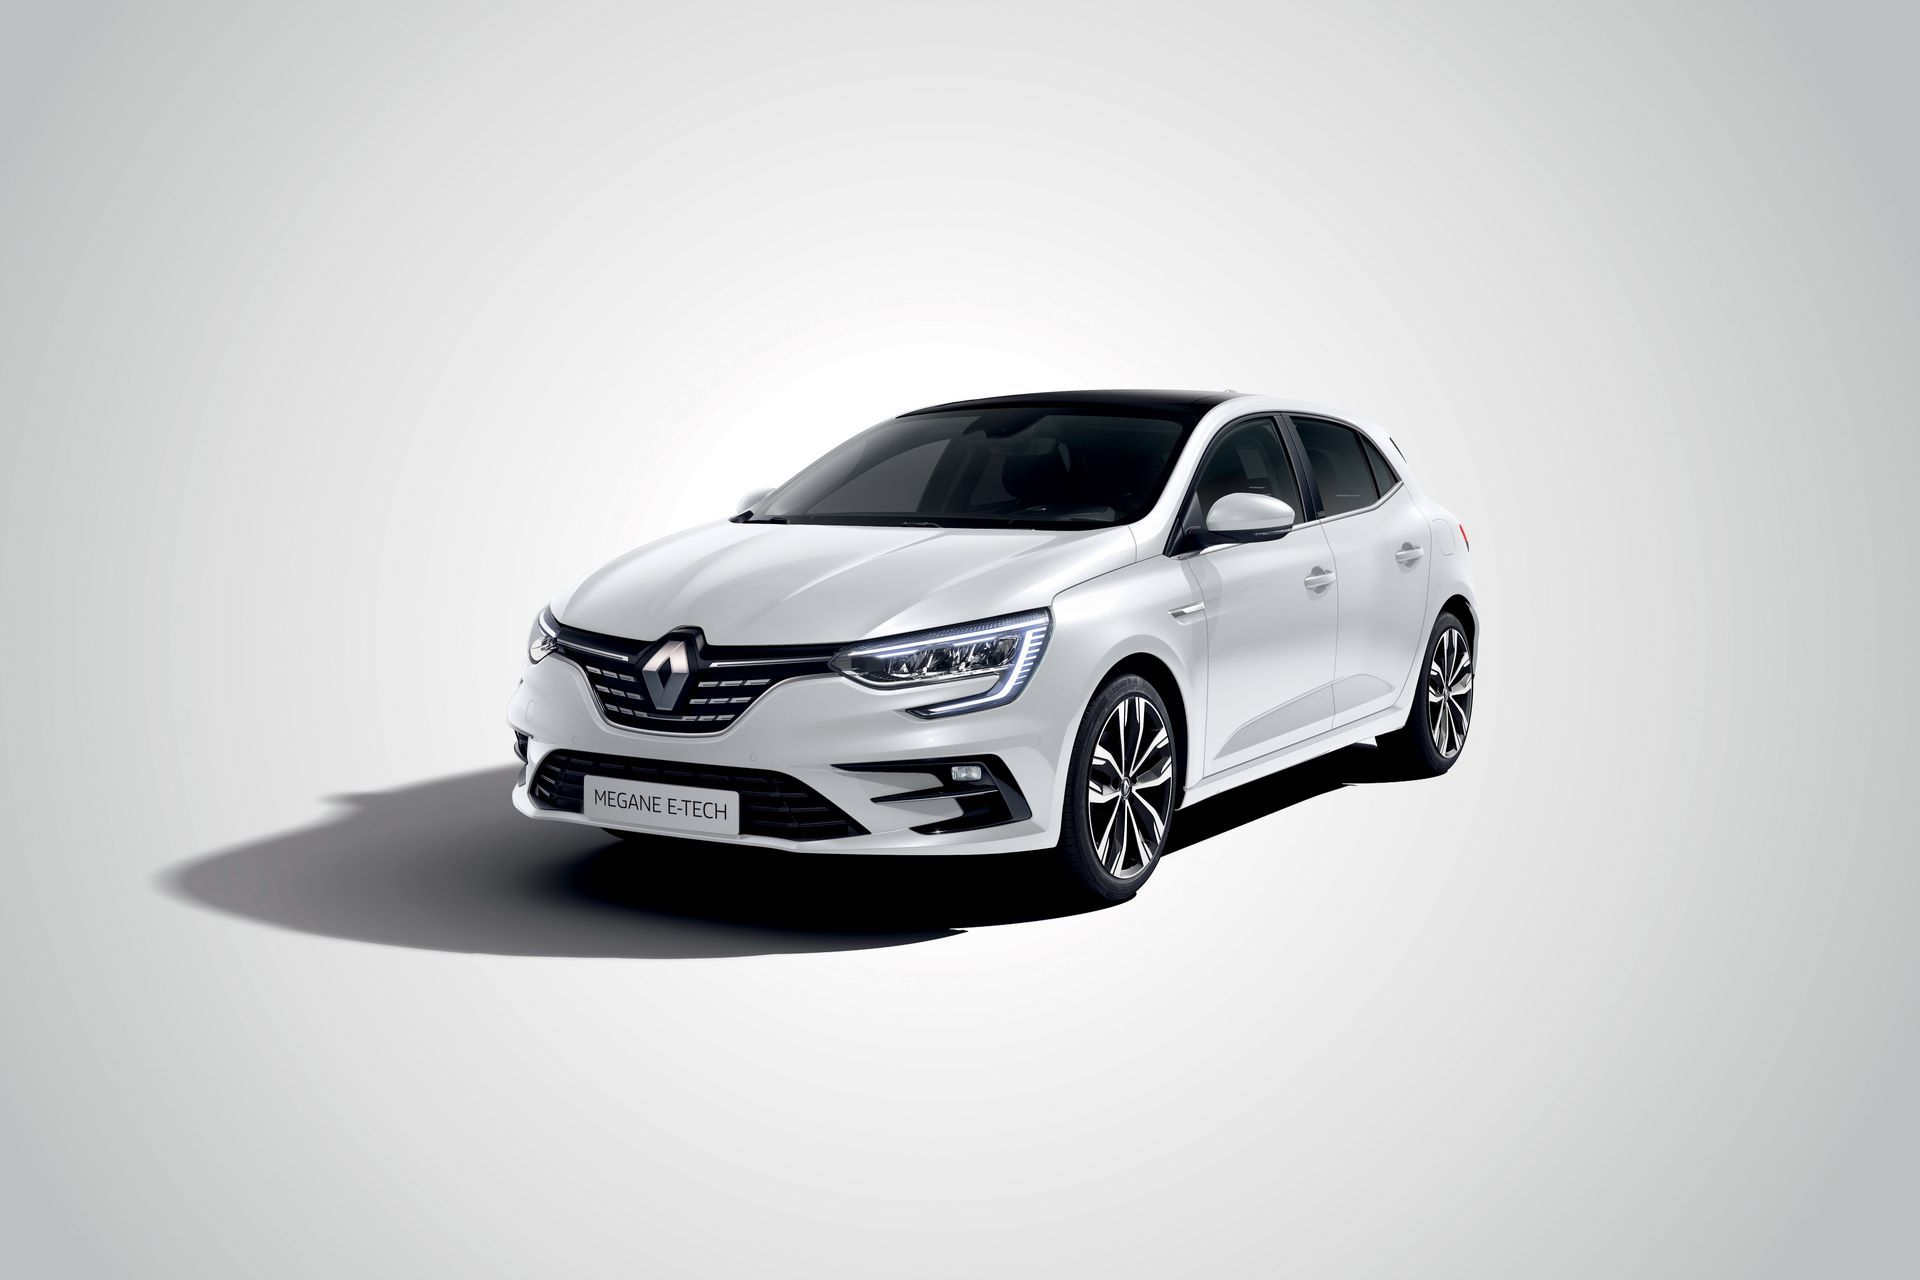 2020-New-Renault-MEGANE-Berline-E-TECH-Plug-In-Hybrid-7